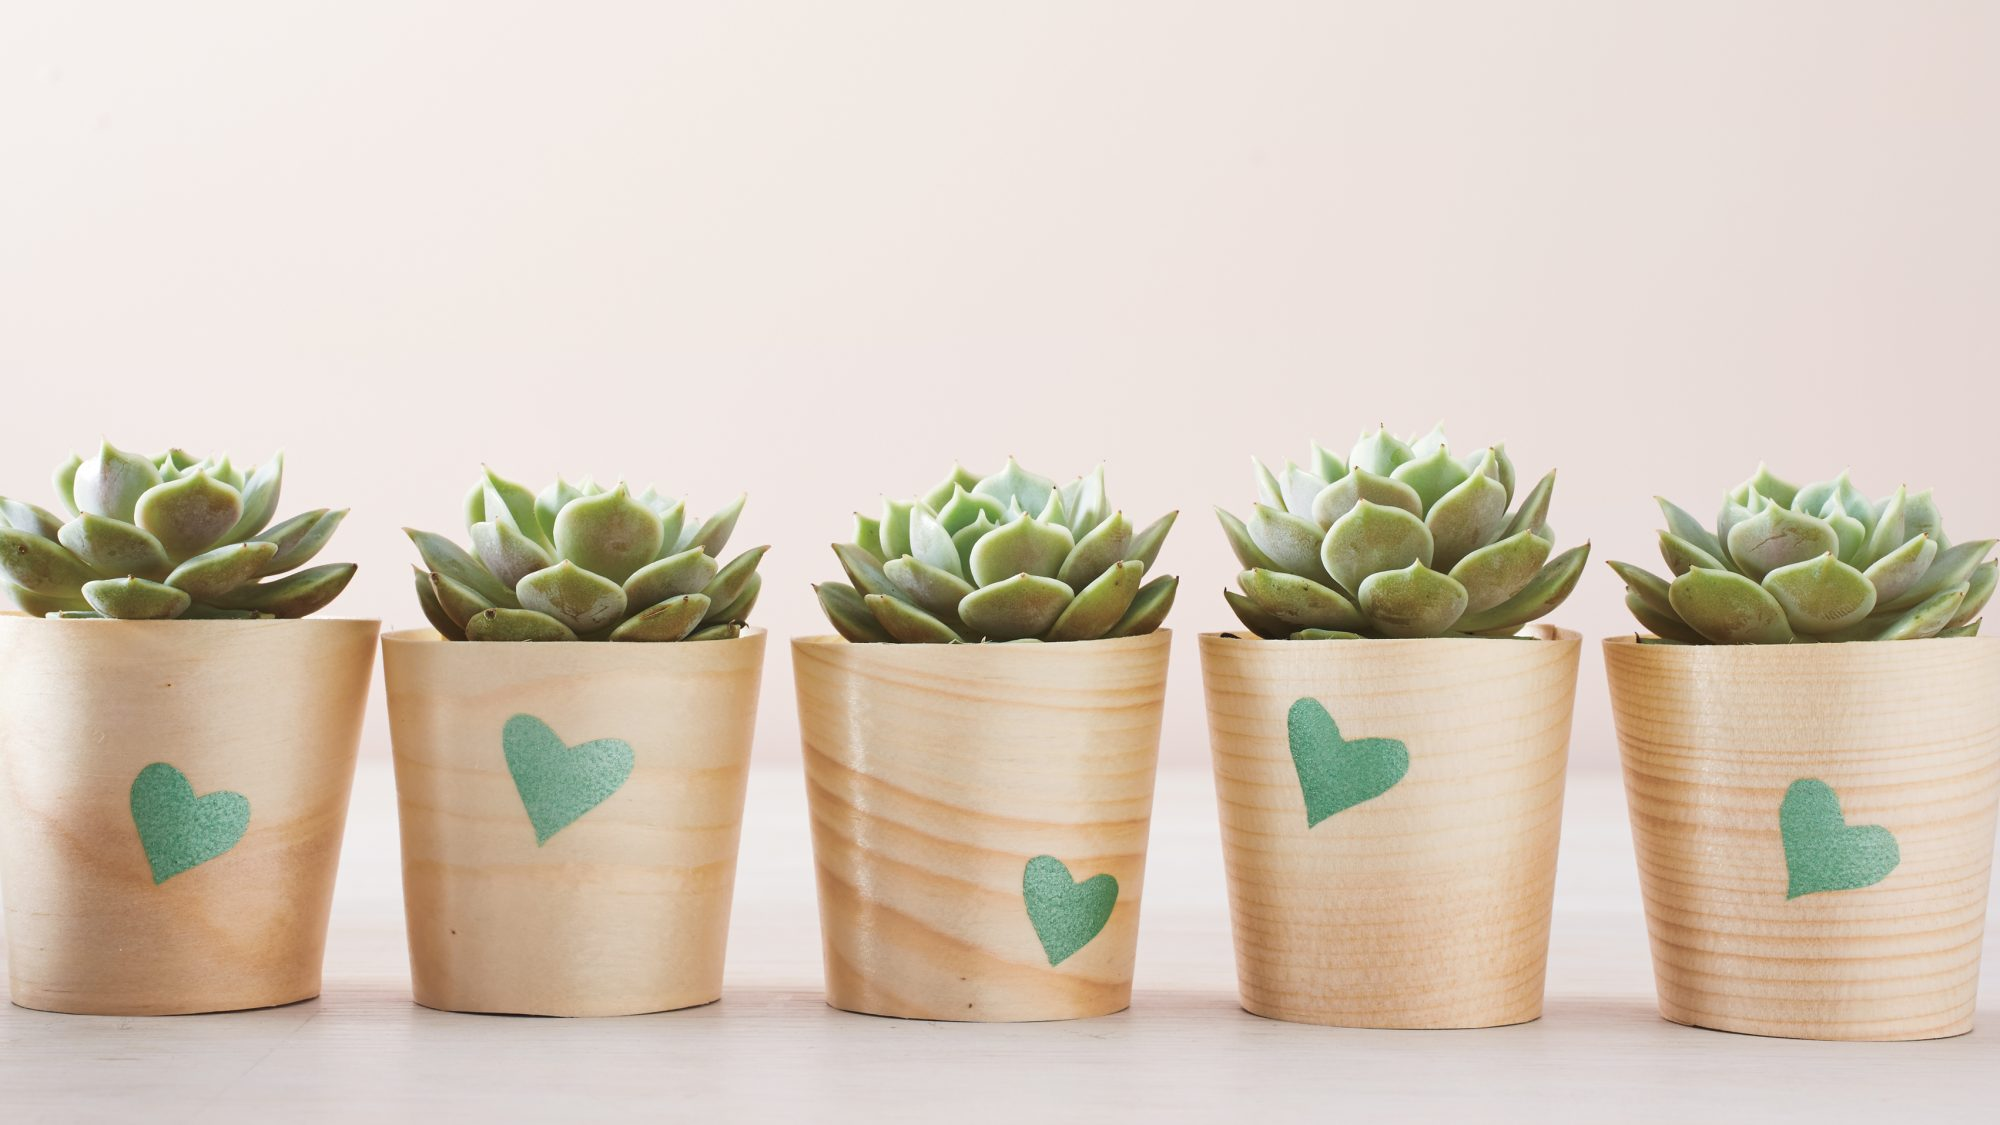 """This gift is perfect for the classroom or a teacher's home. To create, first cut a heart shape out of the stencil film, then stick the film on an inexpensive wooden cup. Dab the paint on the stencil, then peel the film off. Make as many as you need, then transfer a small plant into each cup. We used succulents, but just about any greenery you like should work.Shop Now: Moyishi Natural Solid Wooden Cups, $22.98, amazon.com; Impress Stencil Film, 16"""" by 20"""", walmart.com; Martha Stewart Crafts Multi-Surface Satin Acrylic Paint, $7, amazon.com."""